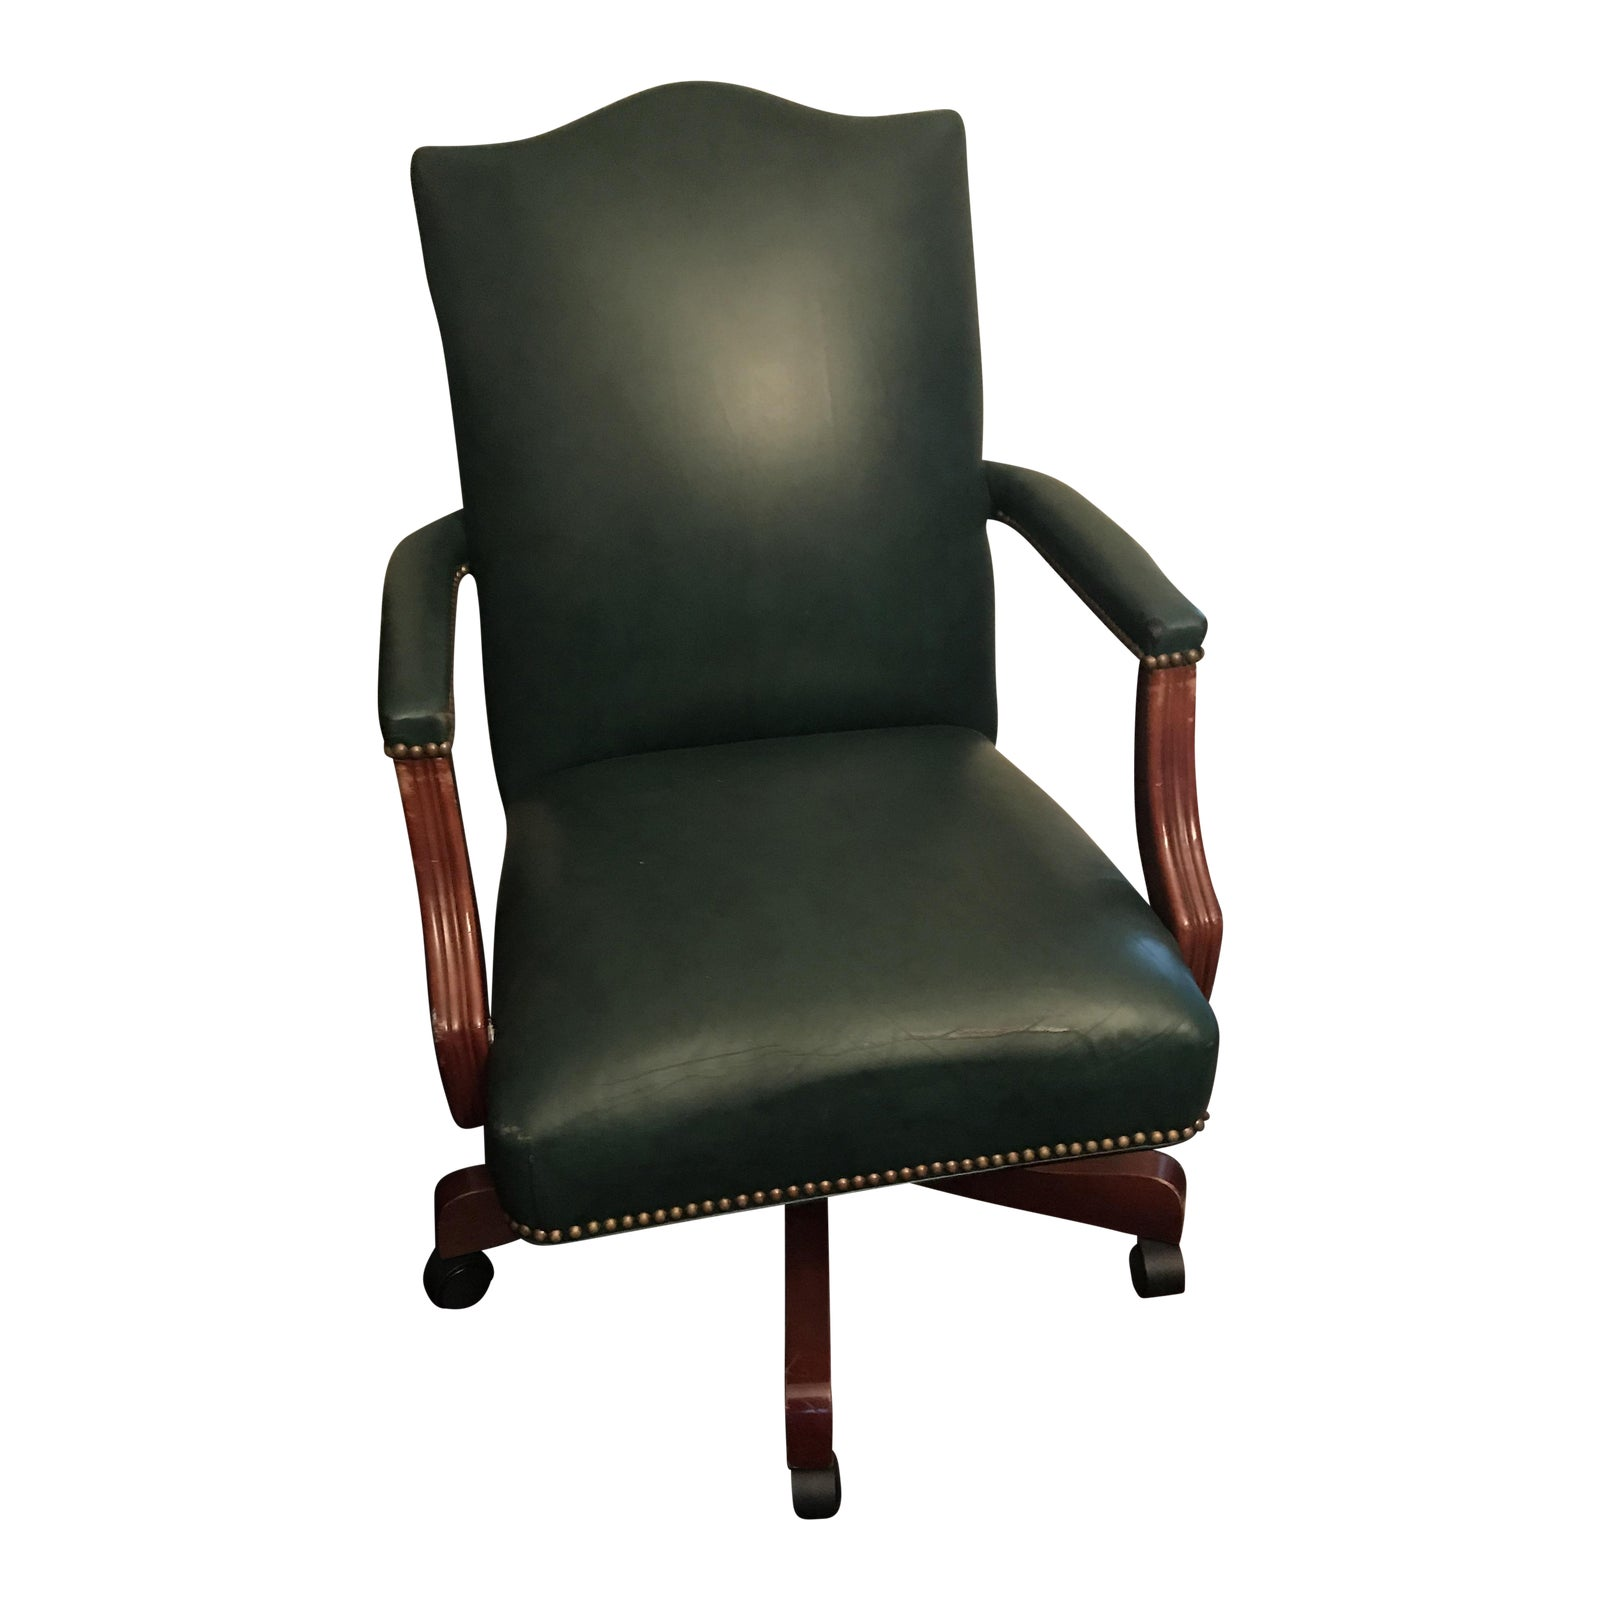 Ethan Allen Quot The Lee Quot Rolling Dark Green Leather Desk Chair Chairish